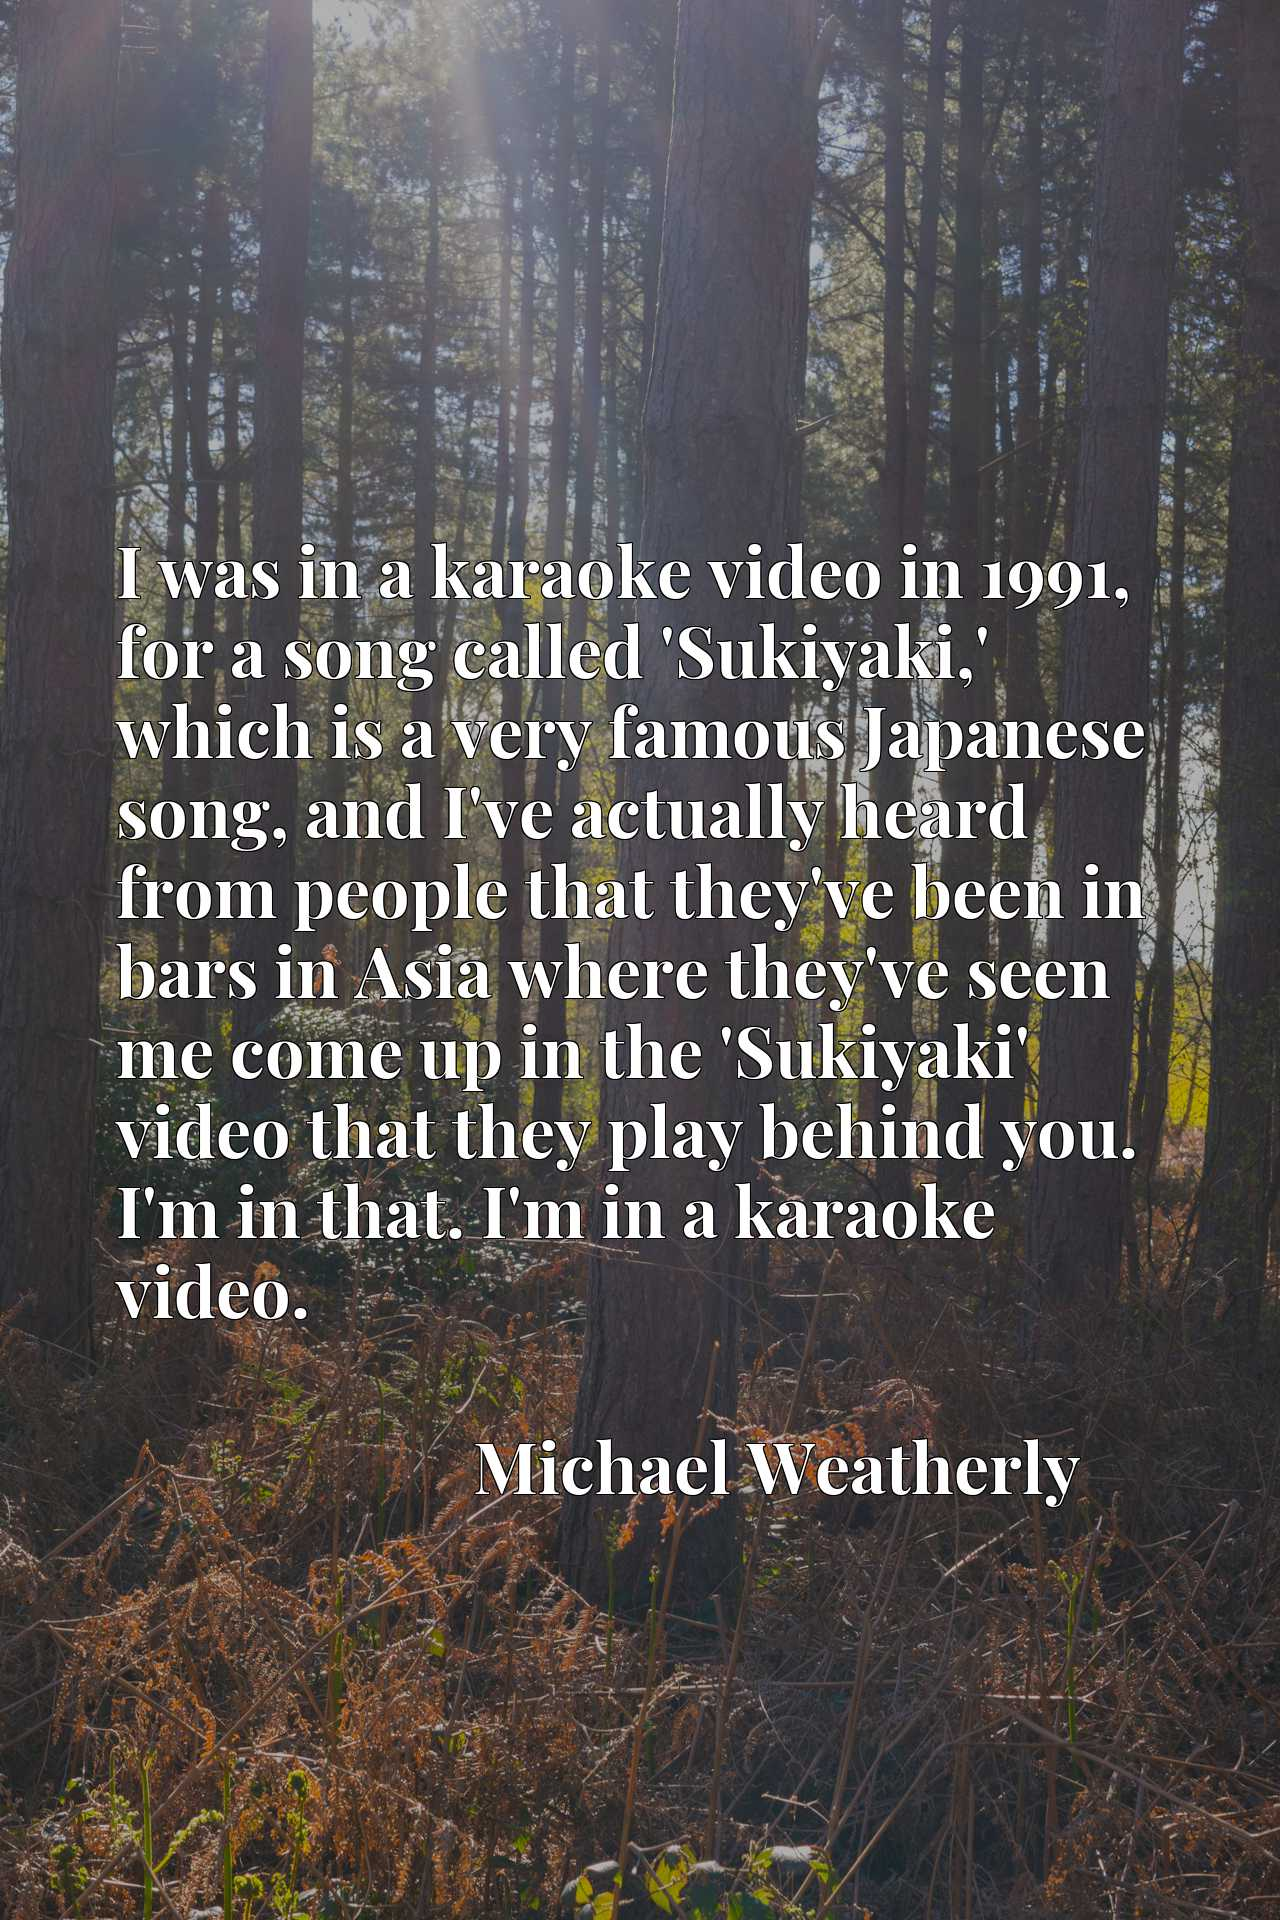 I was in a karaoke video in 1991, for a song called 'Sukiyaki,' which is a very famous Japanese song, and I've actually heard from people that they've been in bars in Asia where they've seen me come up in the 'Sukiyaki' video that they play behind you. I'm in that. I'm in a karaoke video.